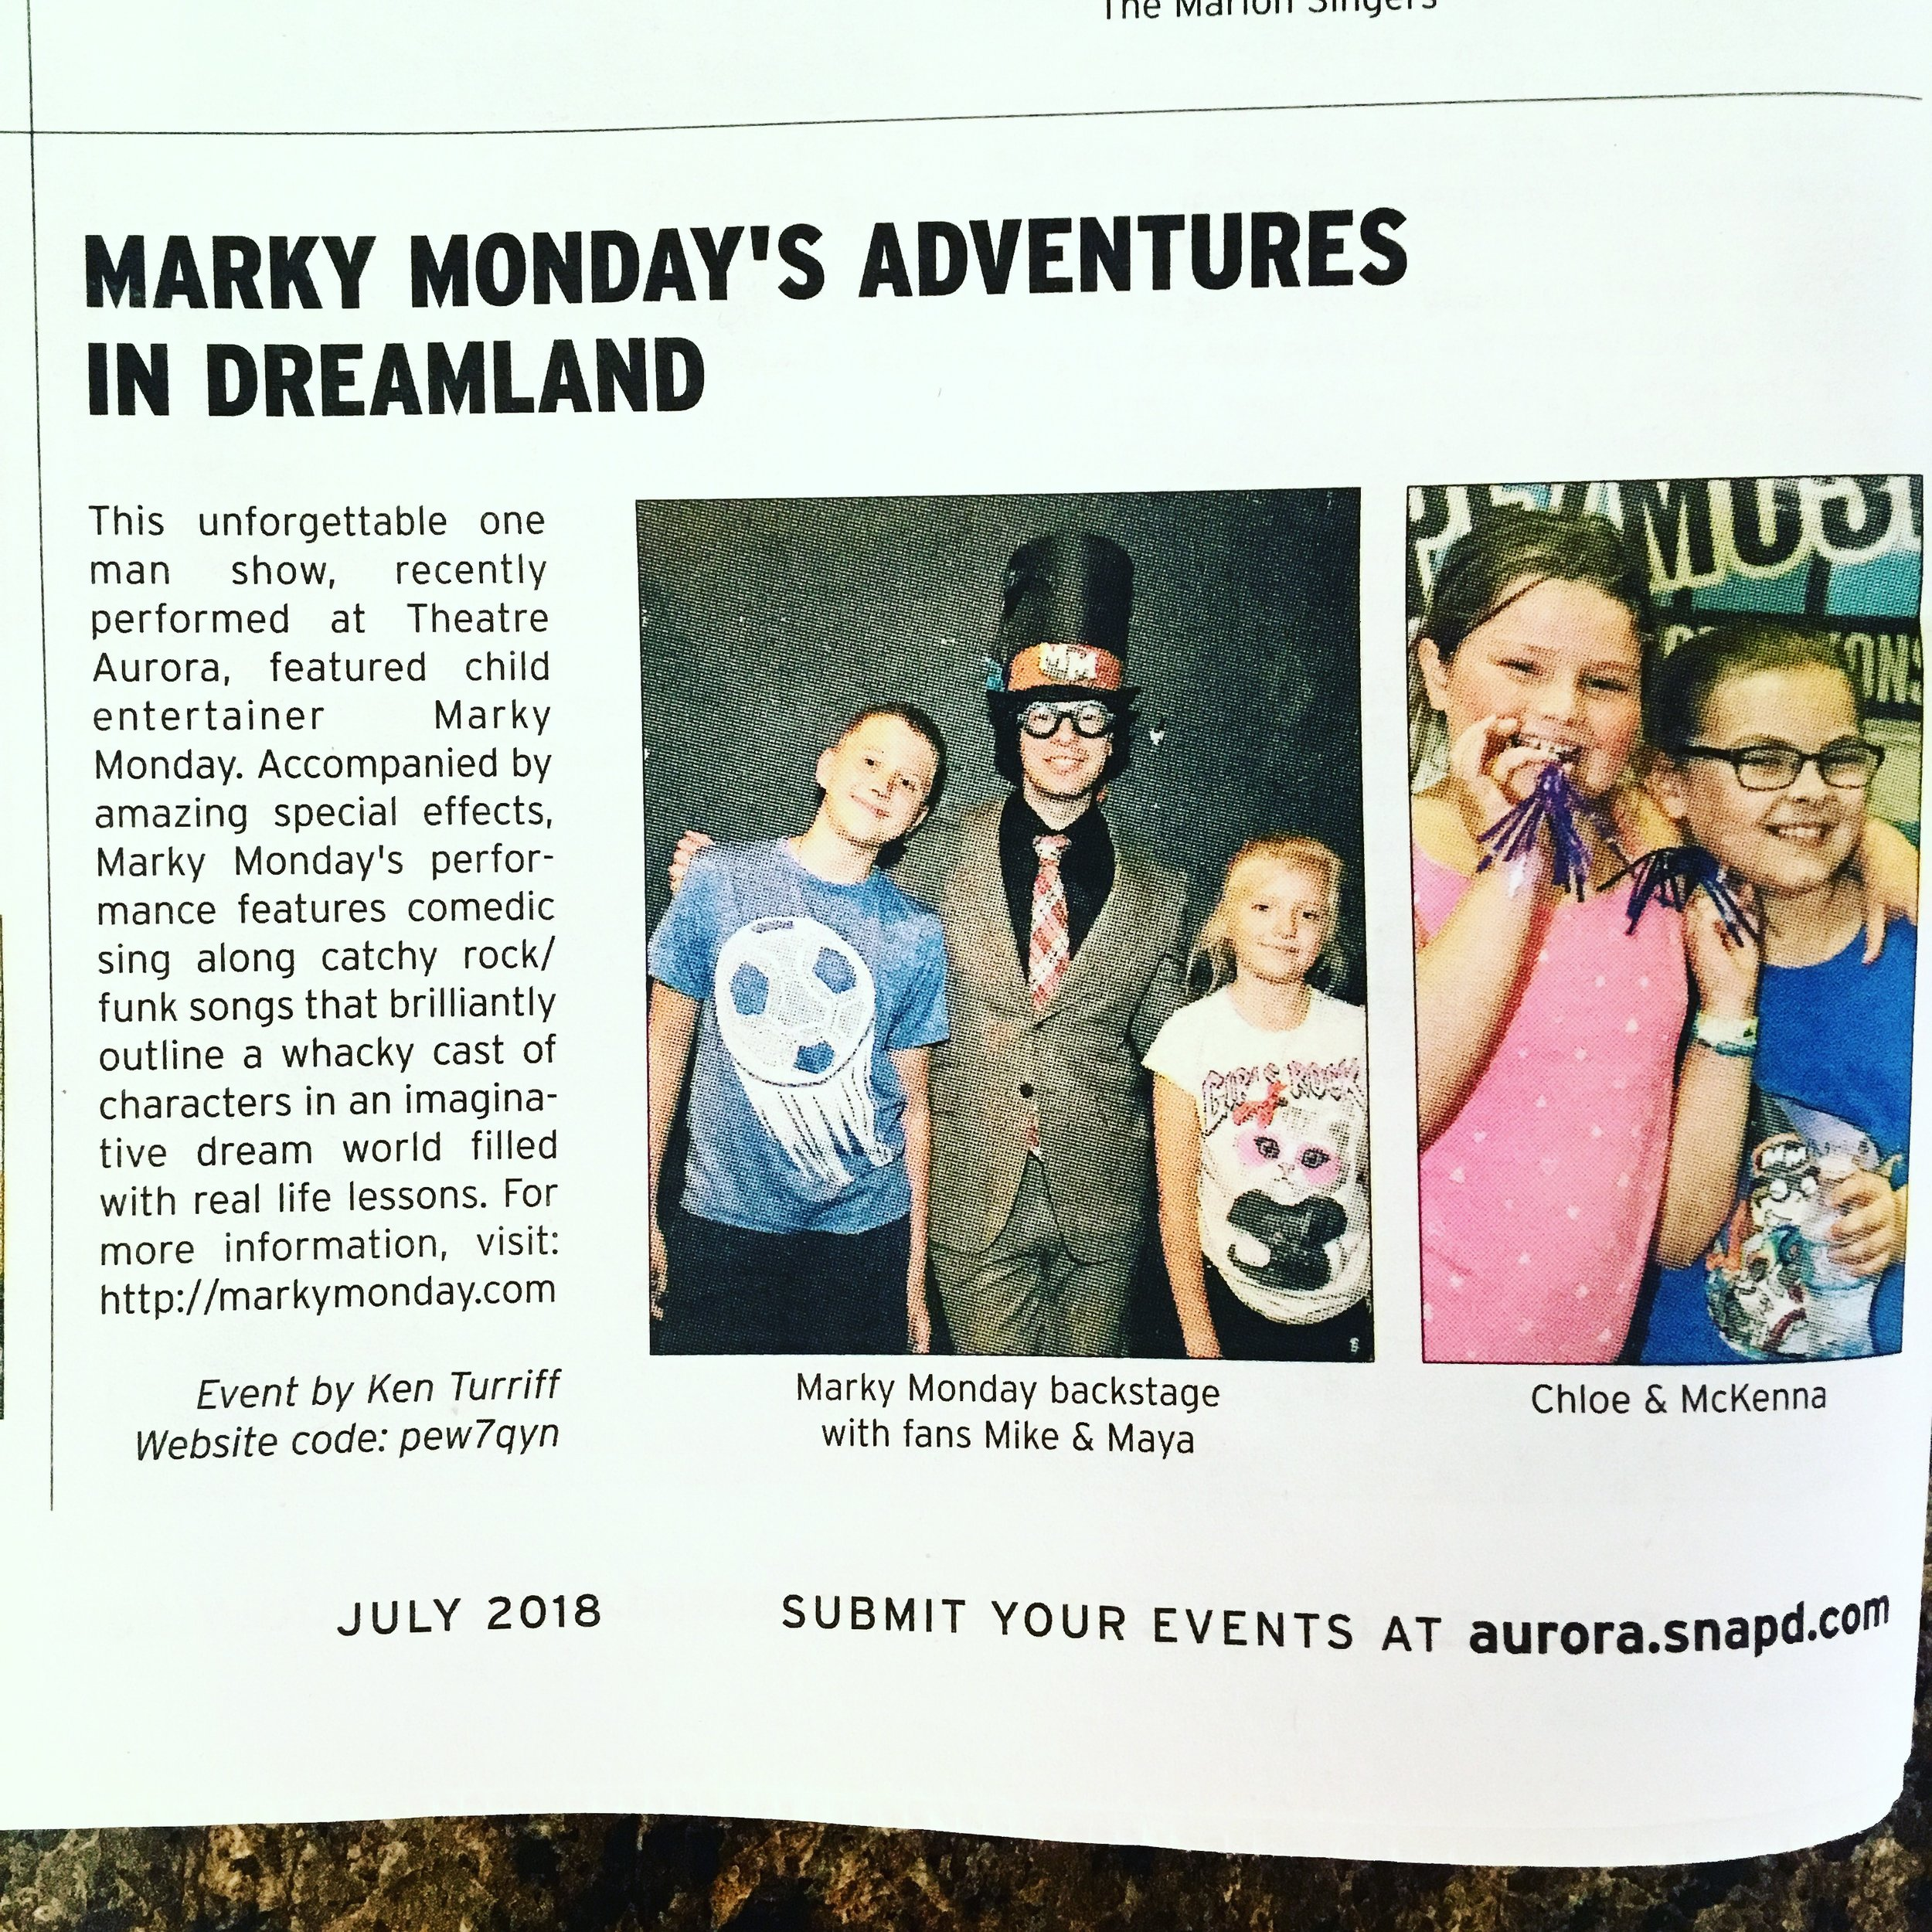 Marky Monday's Adventures in Dreamland in the July 2018 issue of Aurora Snap'd